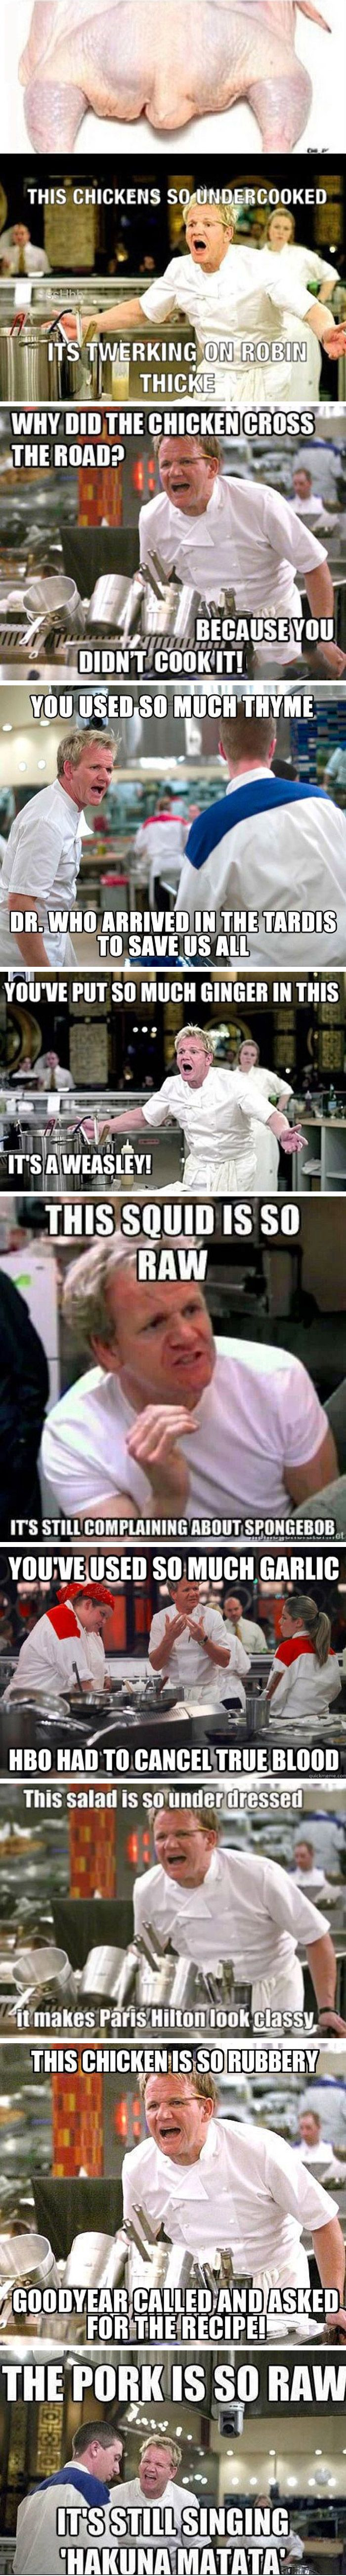 Best Of Chef Ramsay Memes - Ramsay is my favorite oh my goodness